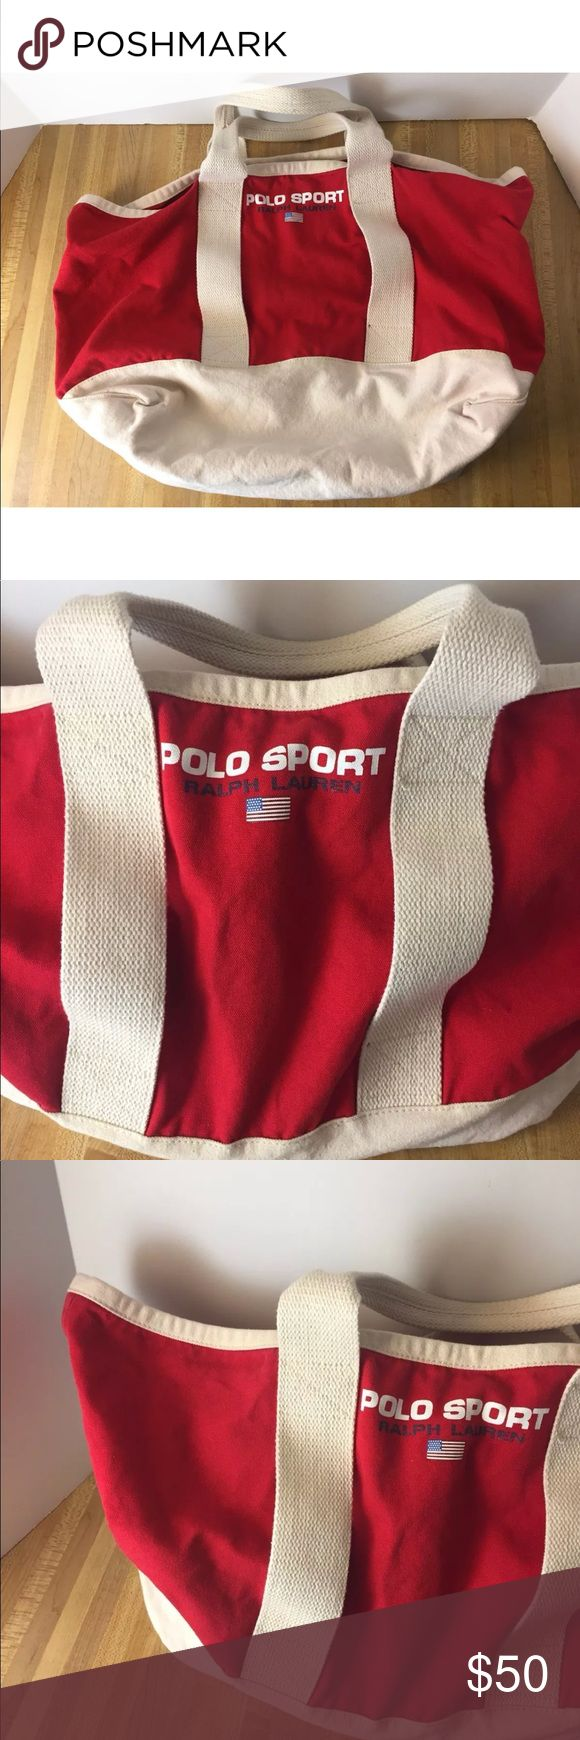 Vintage Polo Sport Ralph Lauren Red Tote Bag Carry RALPH LAUREN POLO PONY White RED THICK CANVAS TOTE BAG PURSE MINT   POLO RALPH LAUREN    White AND RED BIG PONY CANVAS TOTE   MINT CONDITION   HEAVY DUTY CANVAS   TRUE RALPH LAUREN Polo by Ralph Lauren Bags Totes